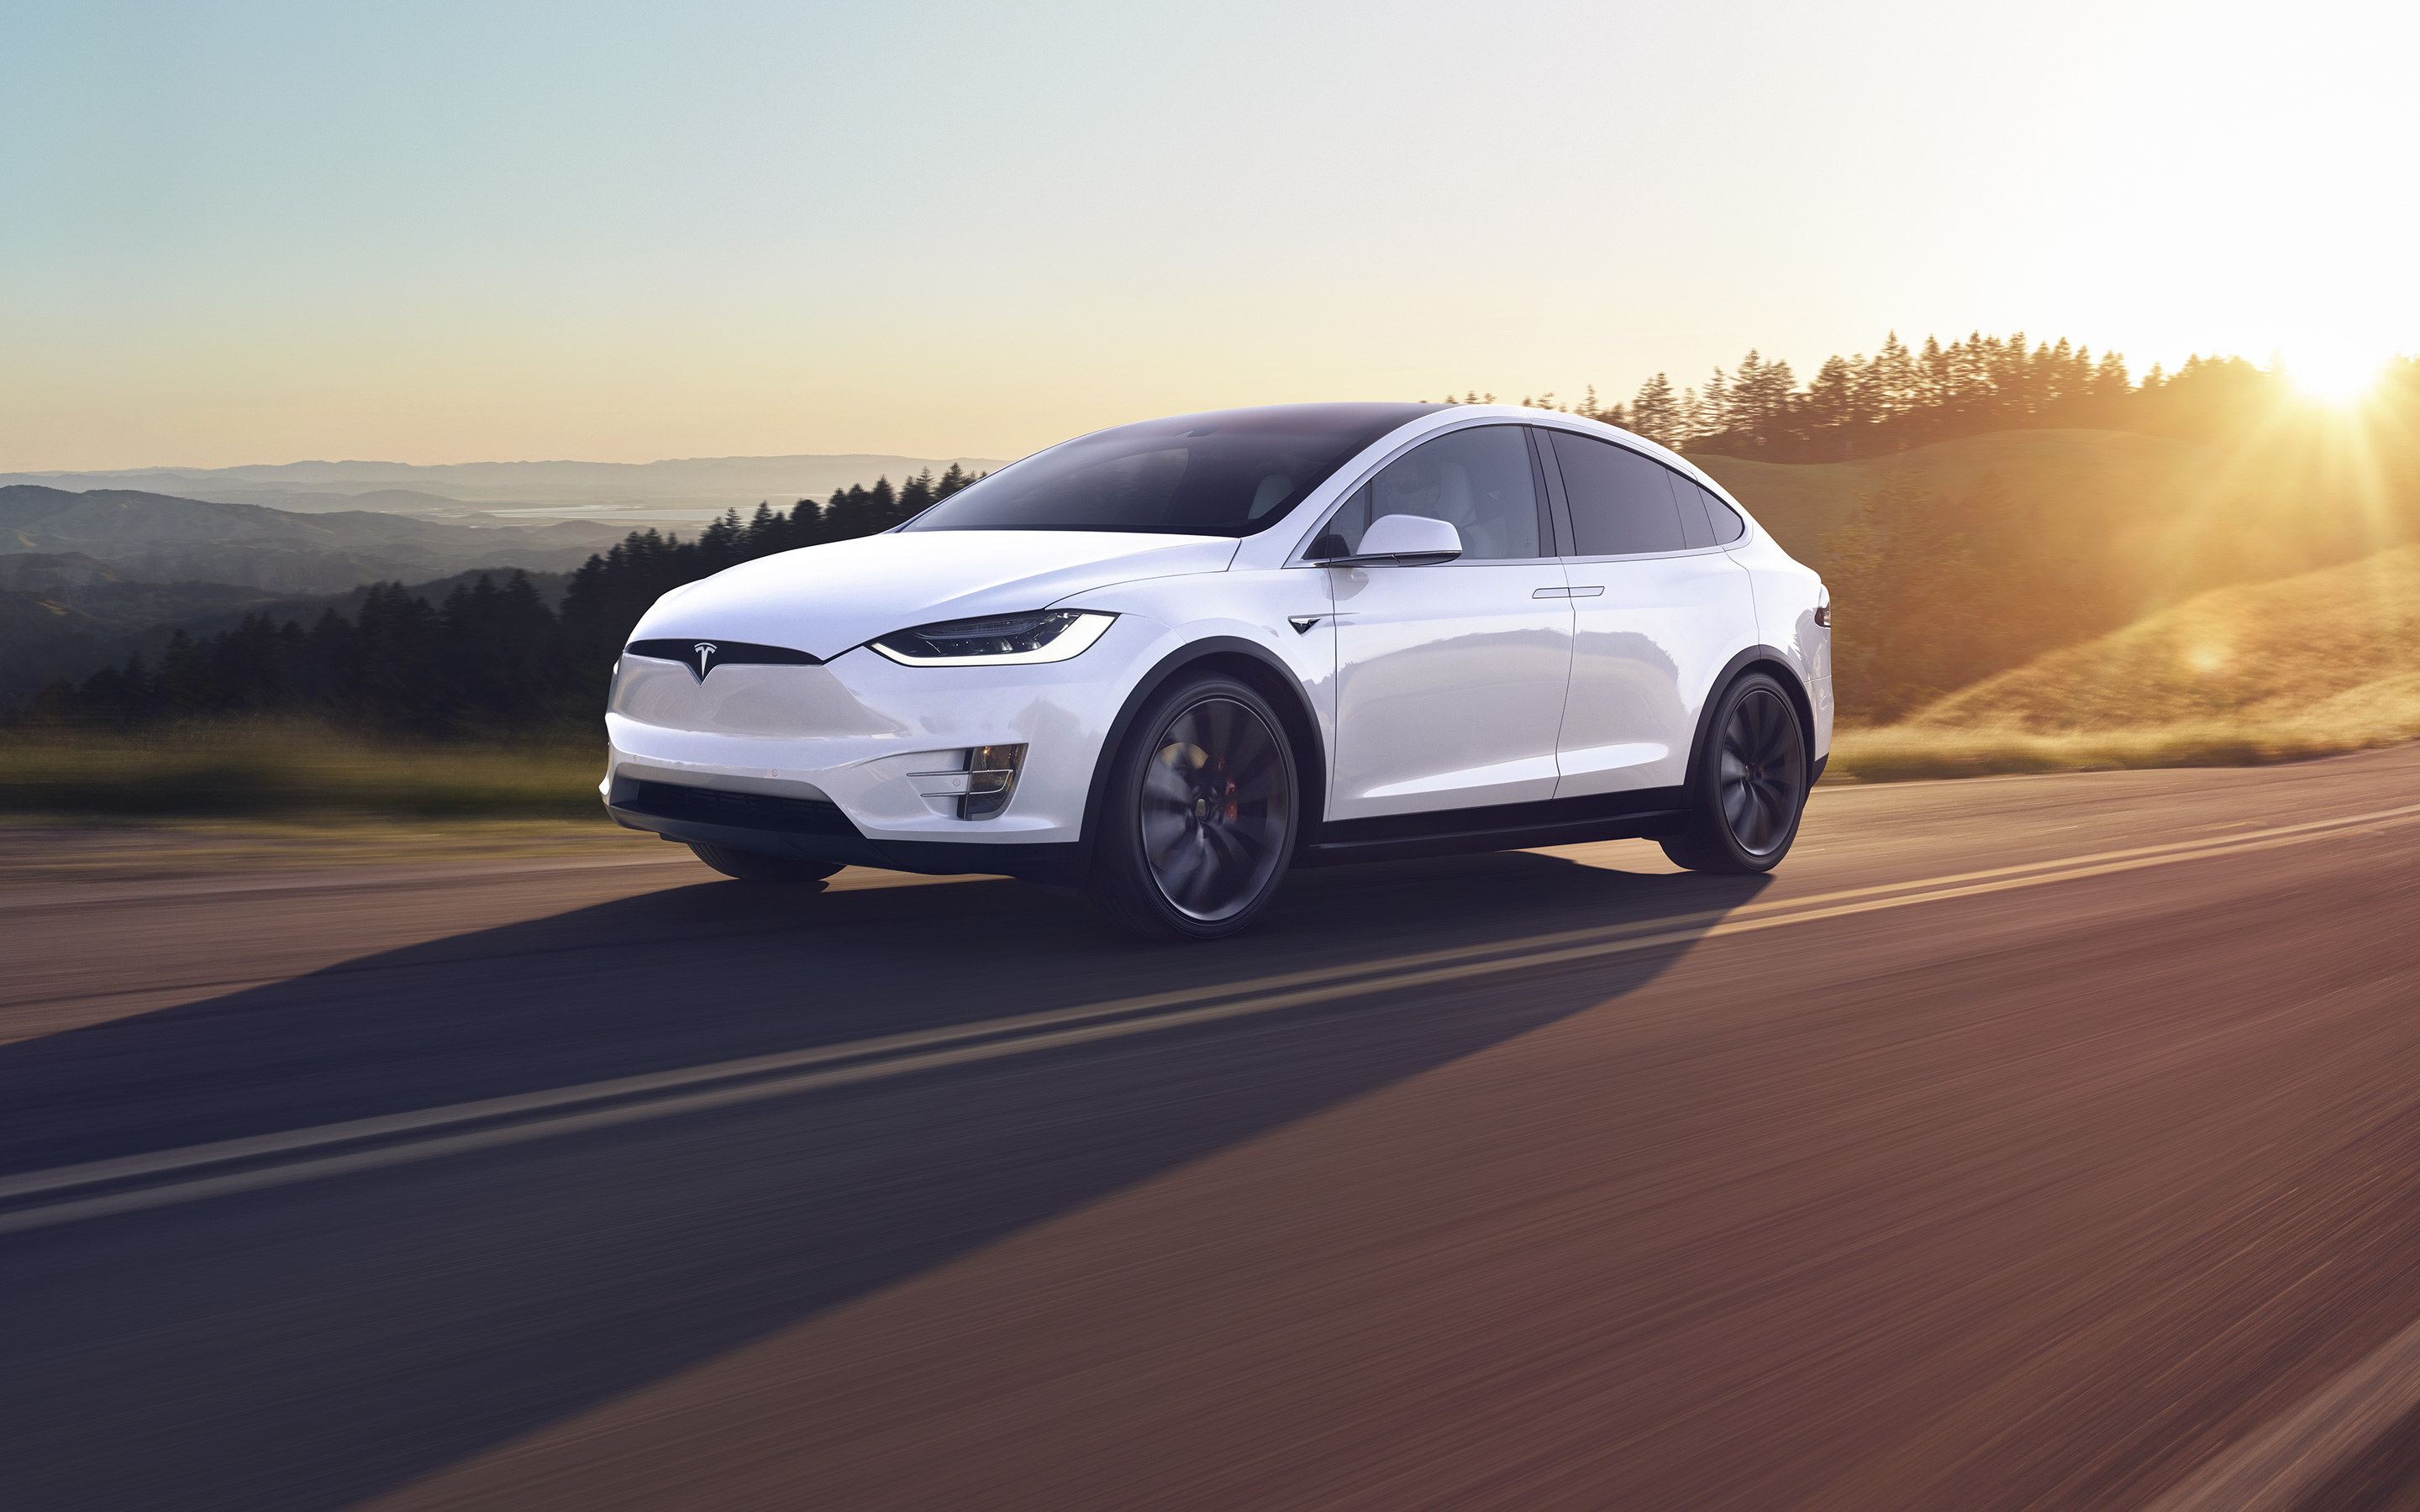 How to Open a Tesla Door - Ultimate Guide For All Models